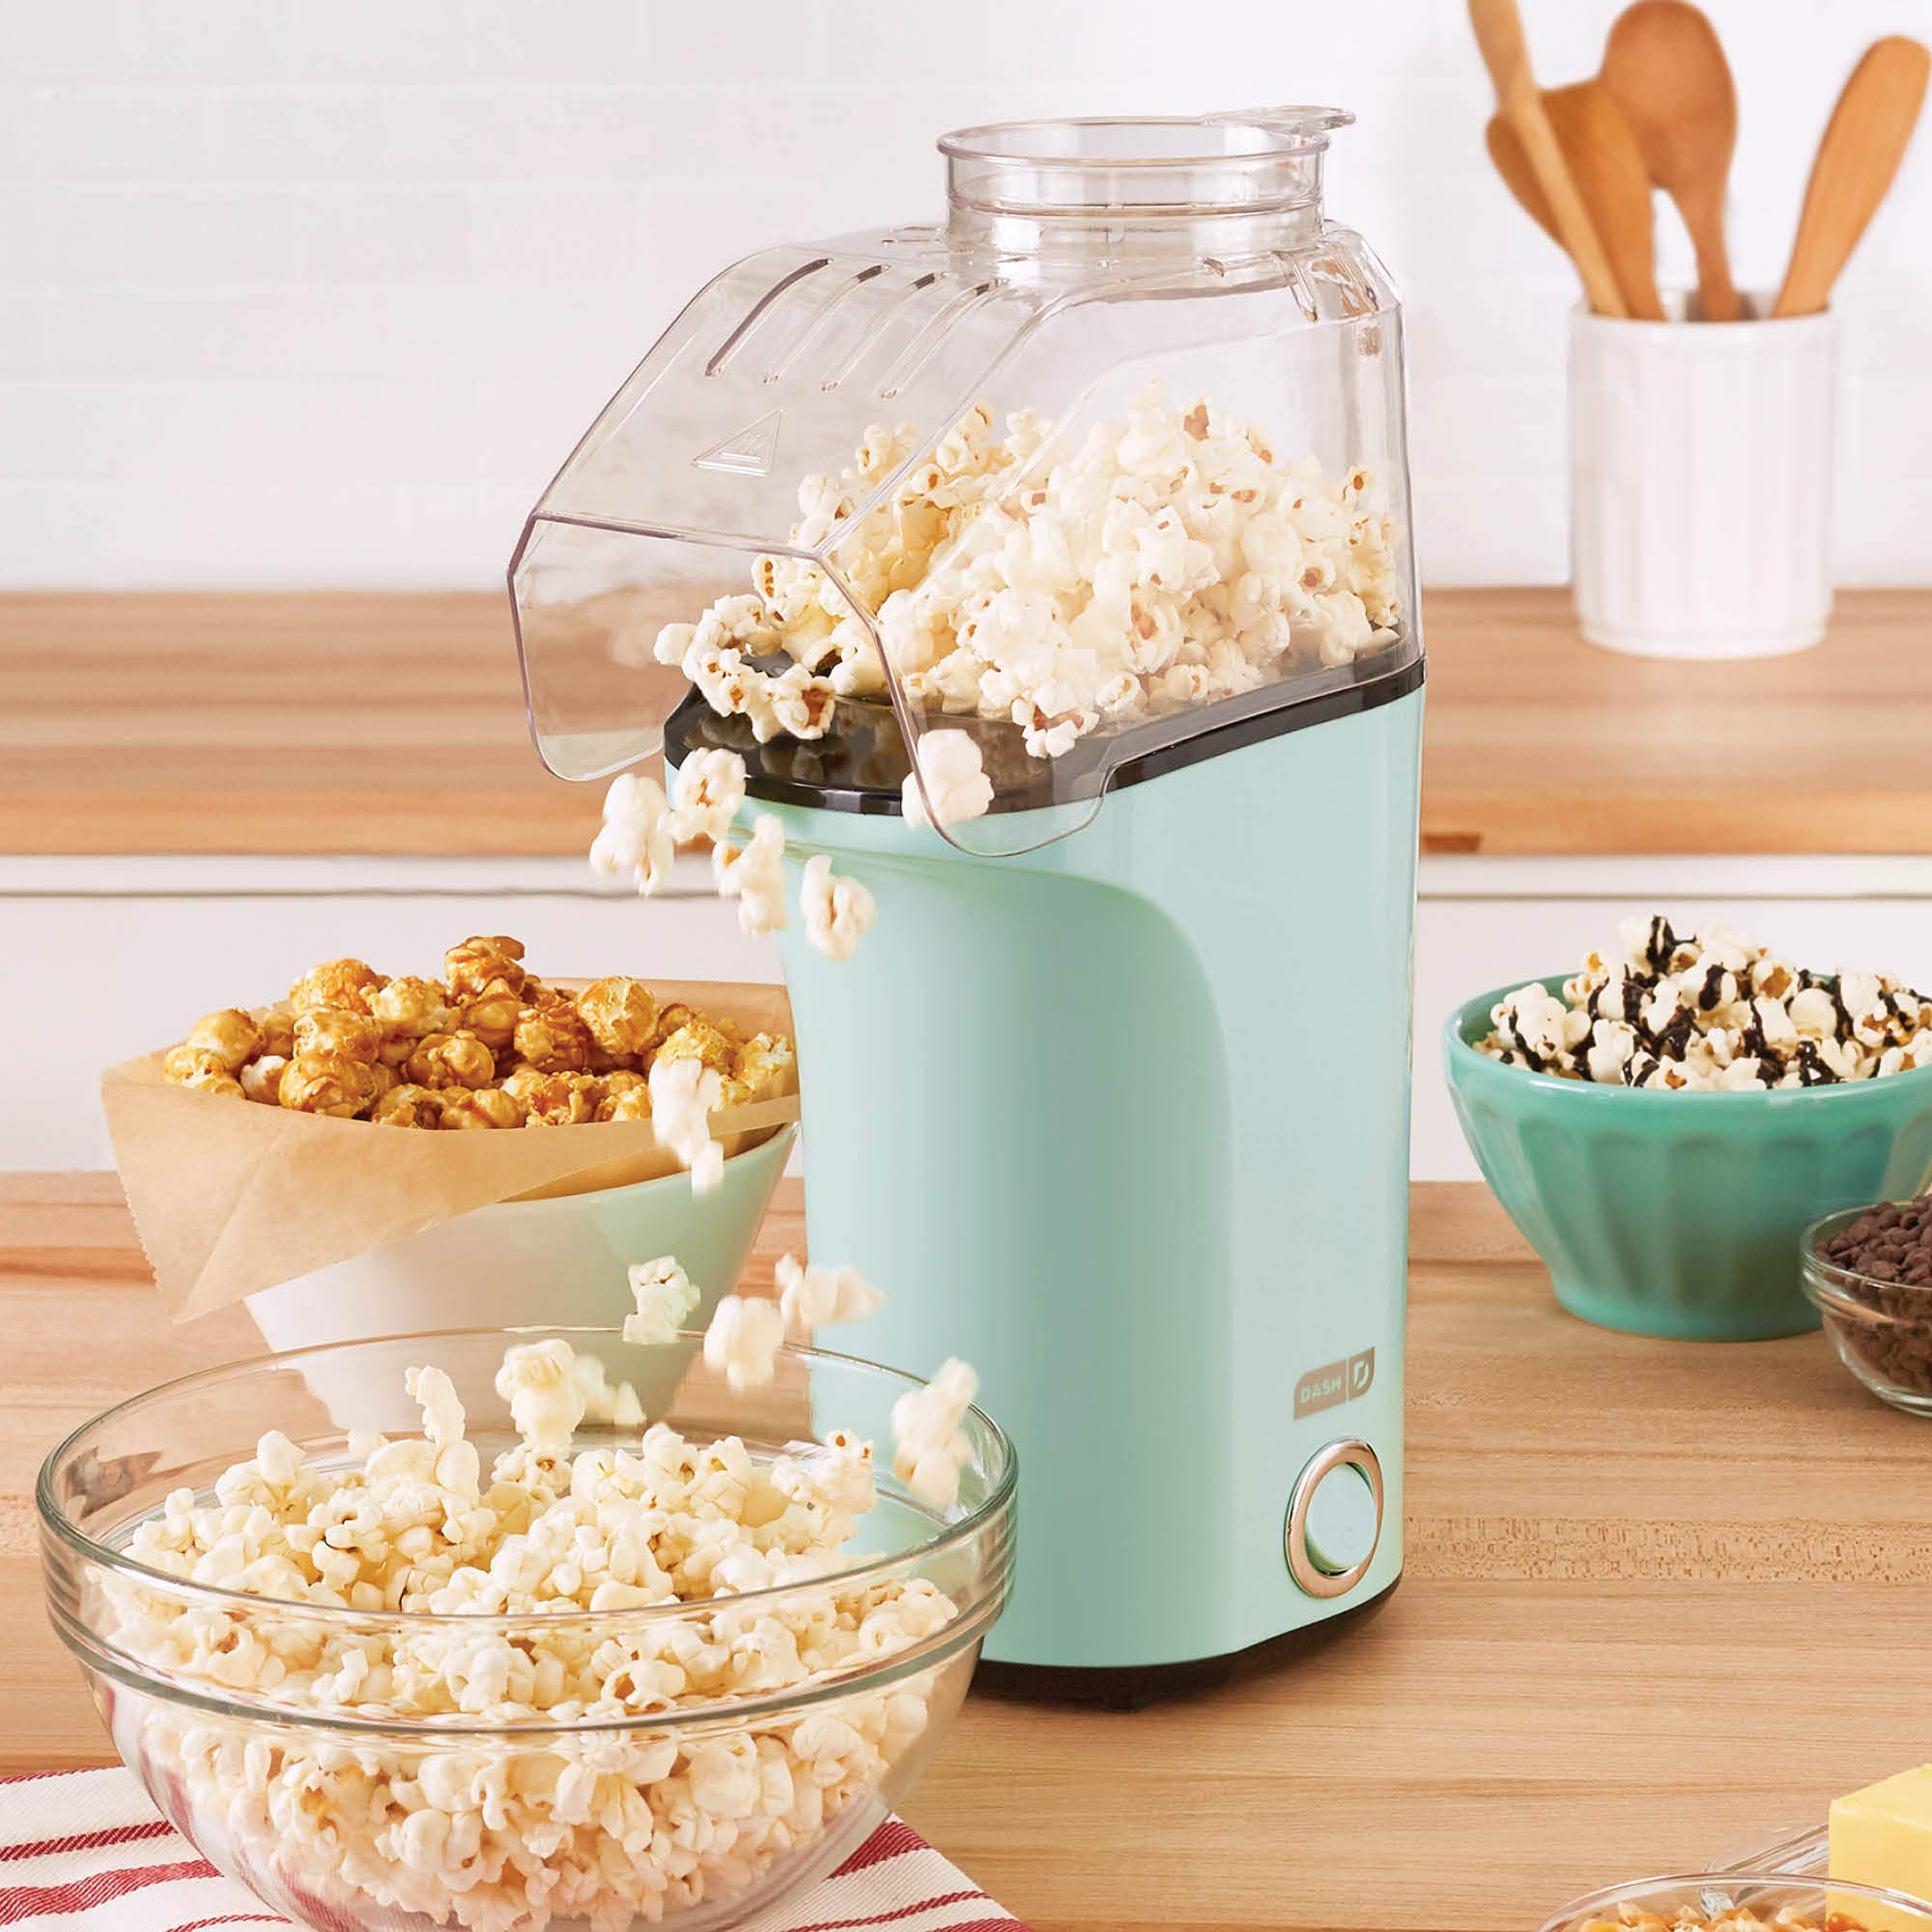 Dash DAPP150V2AQ04 Hot Air Popcorn Popper Maker with with Measuring Cup to Portion Popping Corn Kernels + Melt Butter, Makes 16C, Aqua by DASH (Image #2)